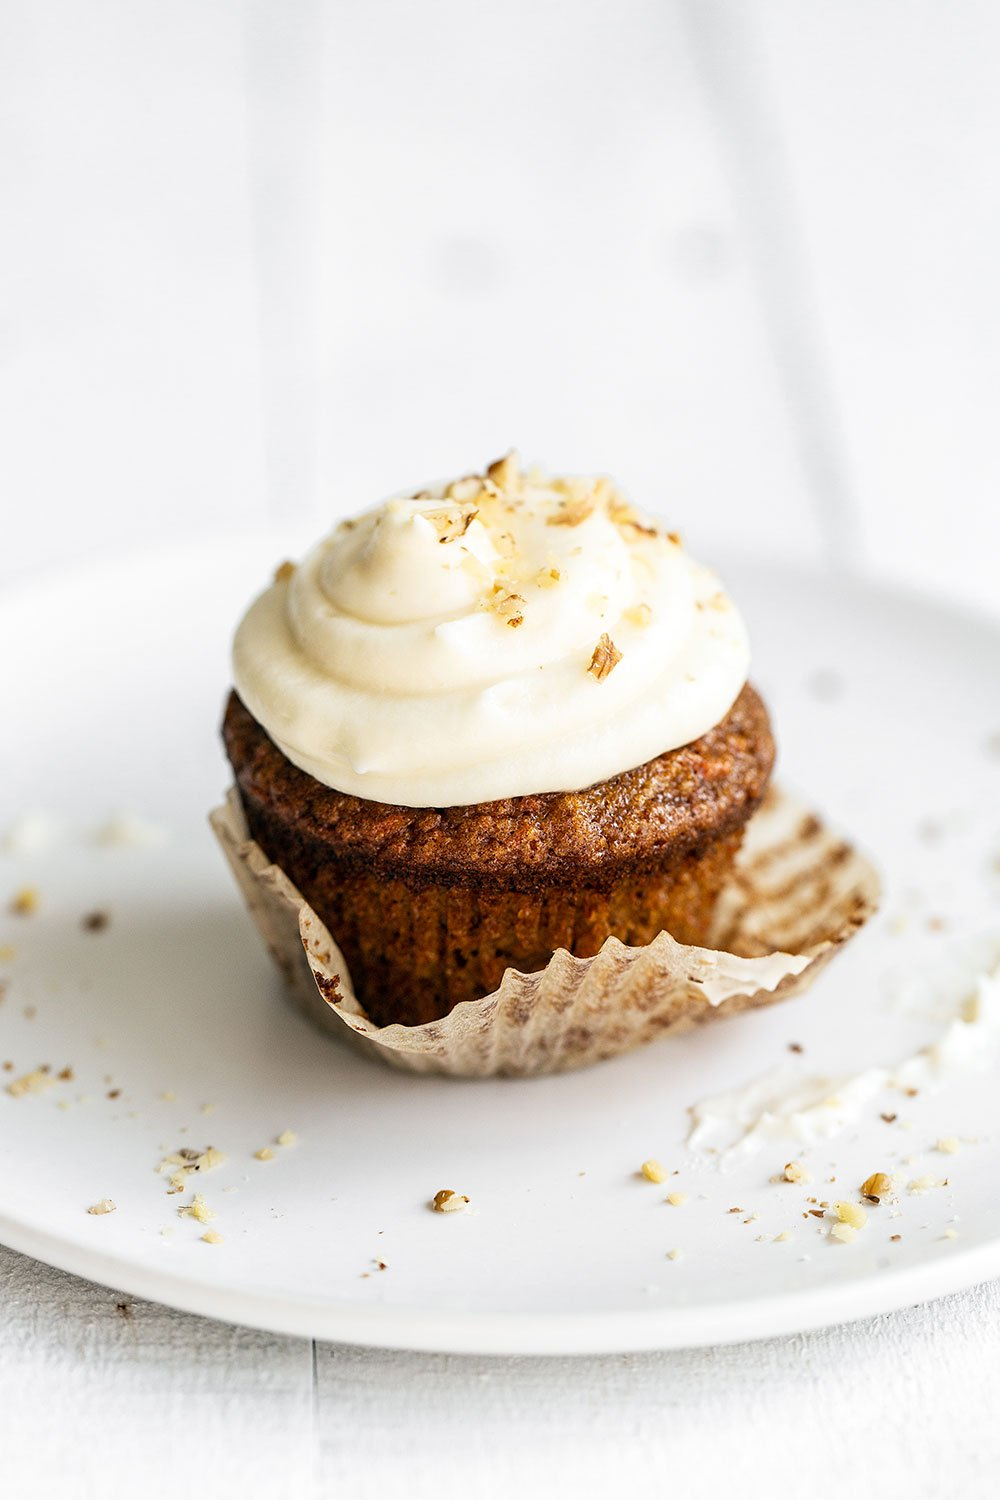 Carrot cupcake on a plate with wrapper being removed